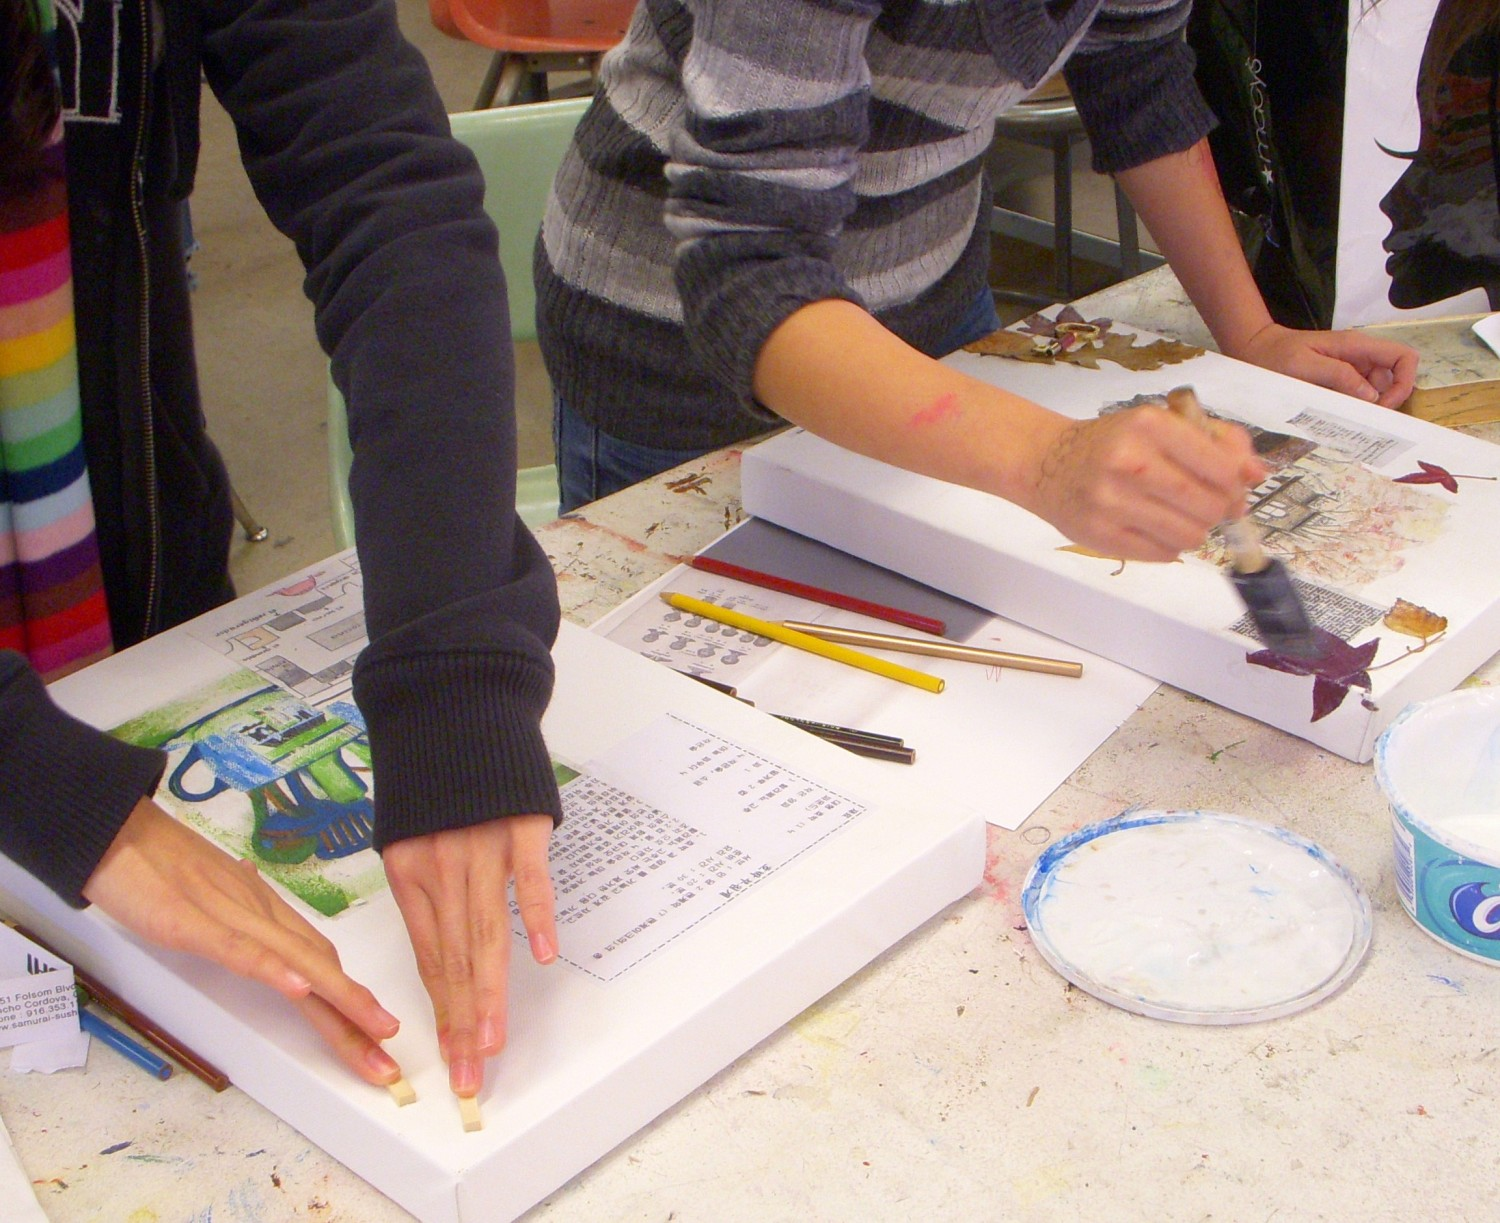 students in a high school art class working on mixed media artworks